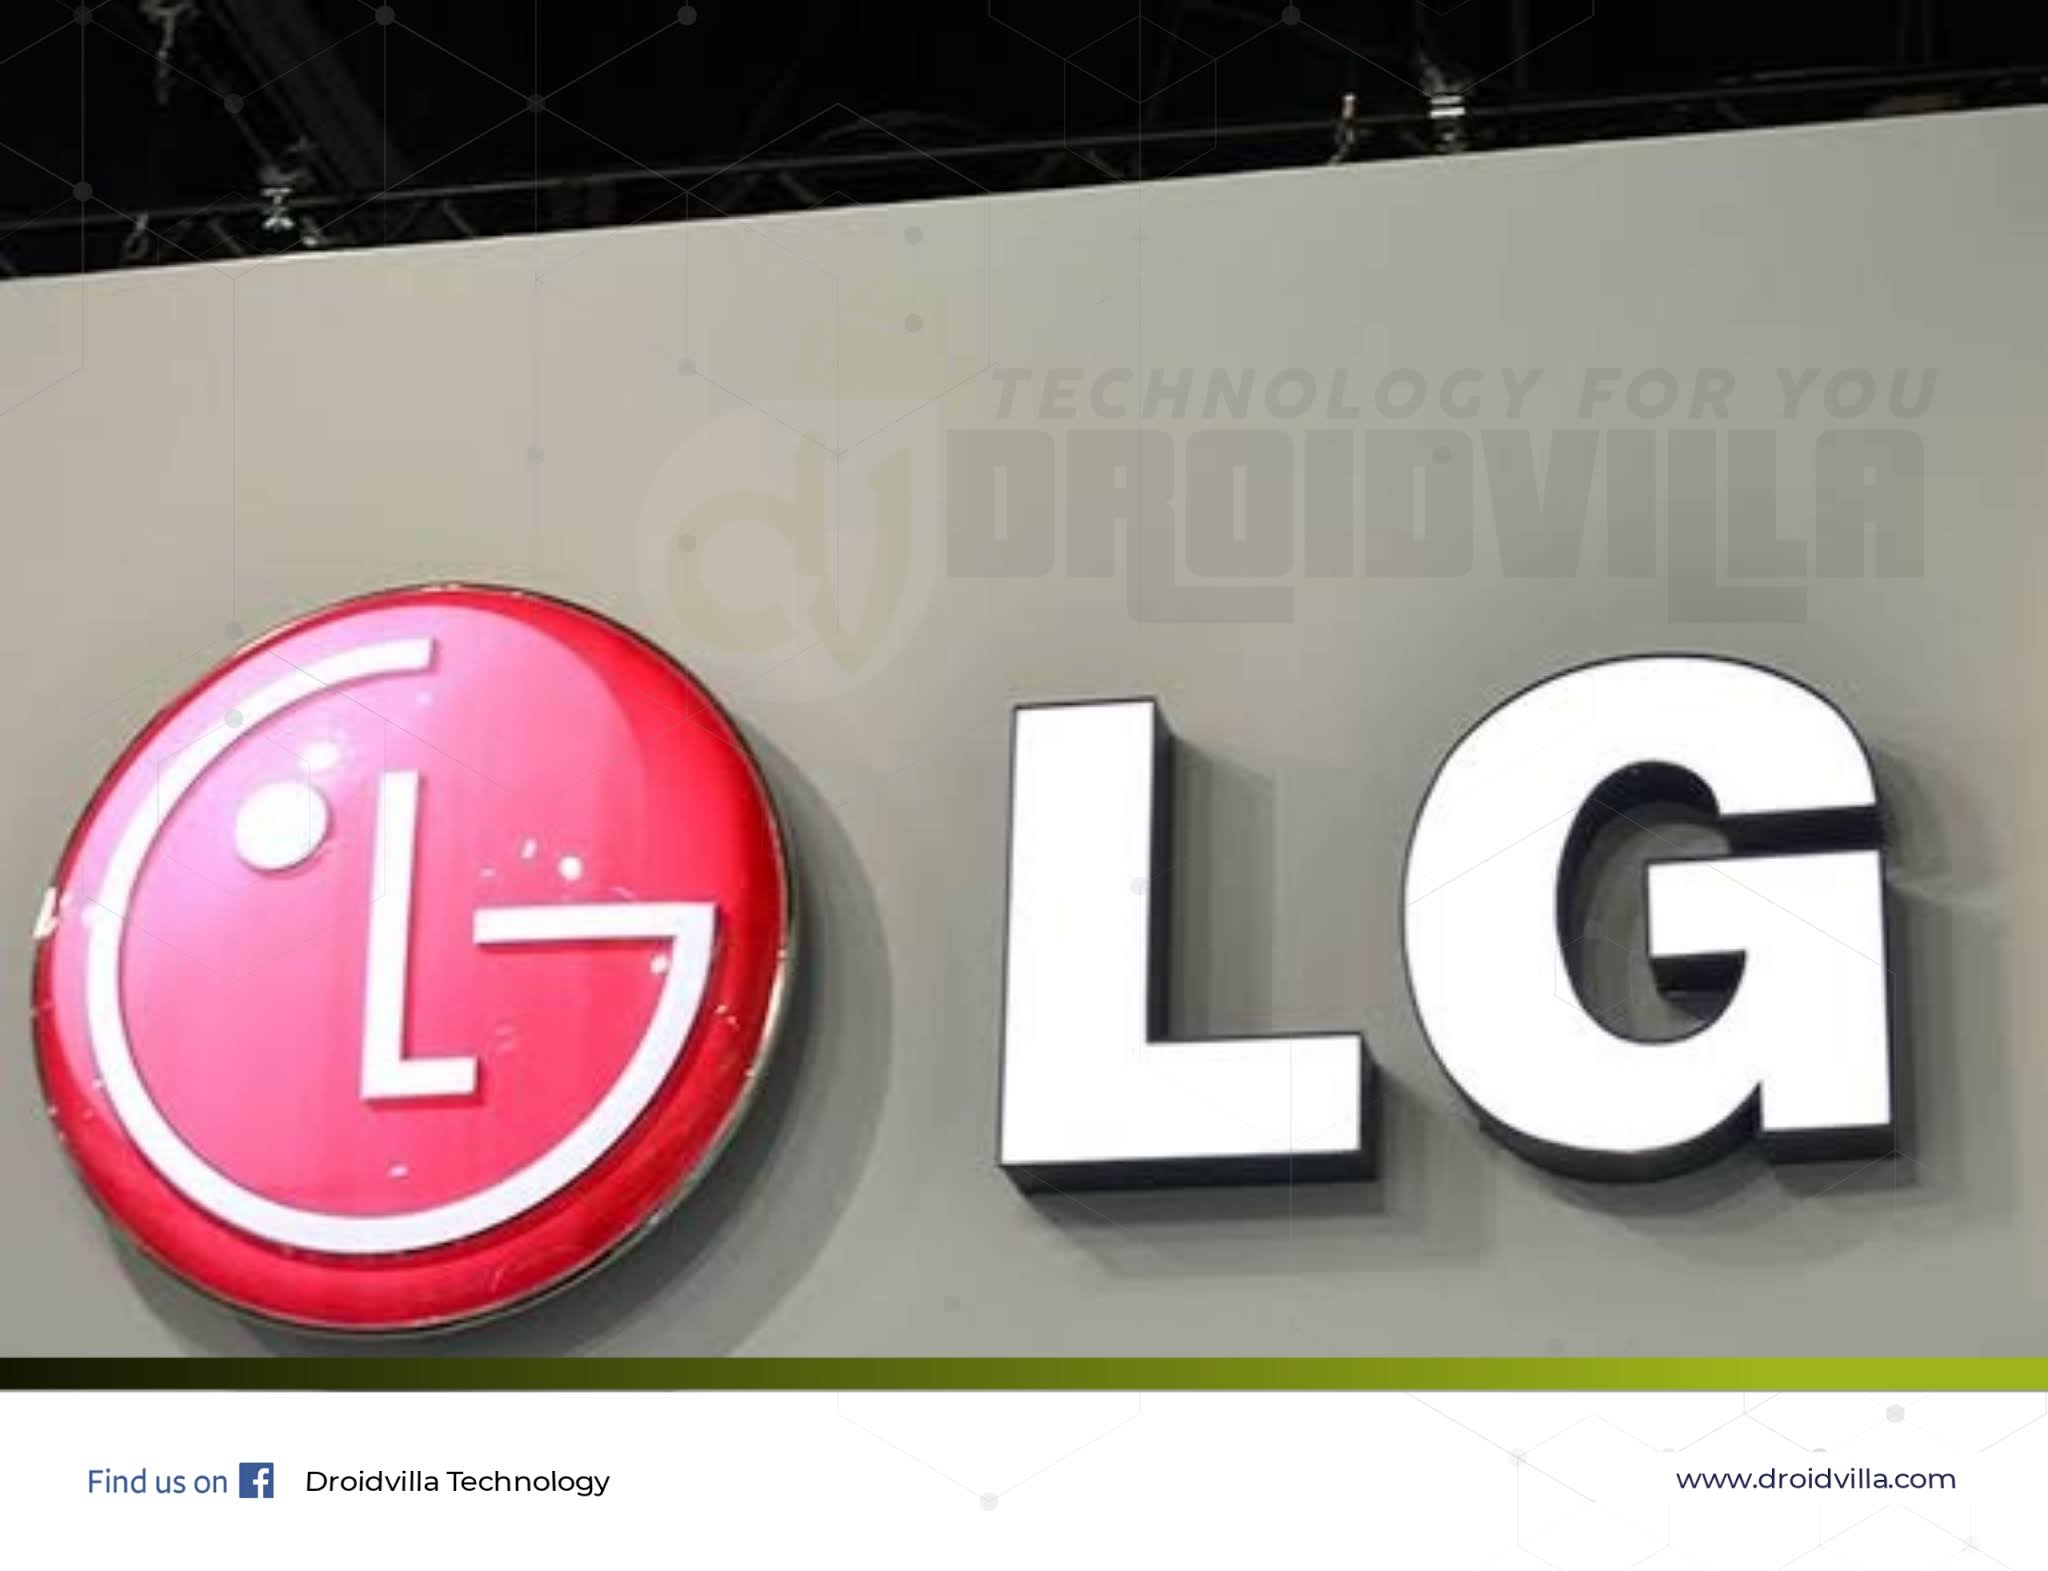 rumours-now-officially-true-lg-exits-mobile-phone-production-droidvilla-tech-1-android-tech-blog